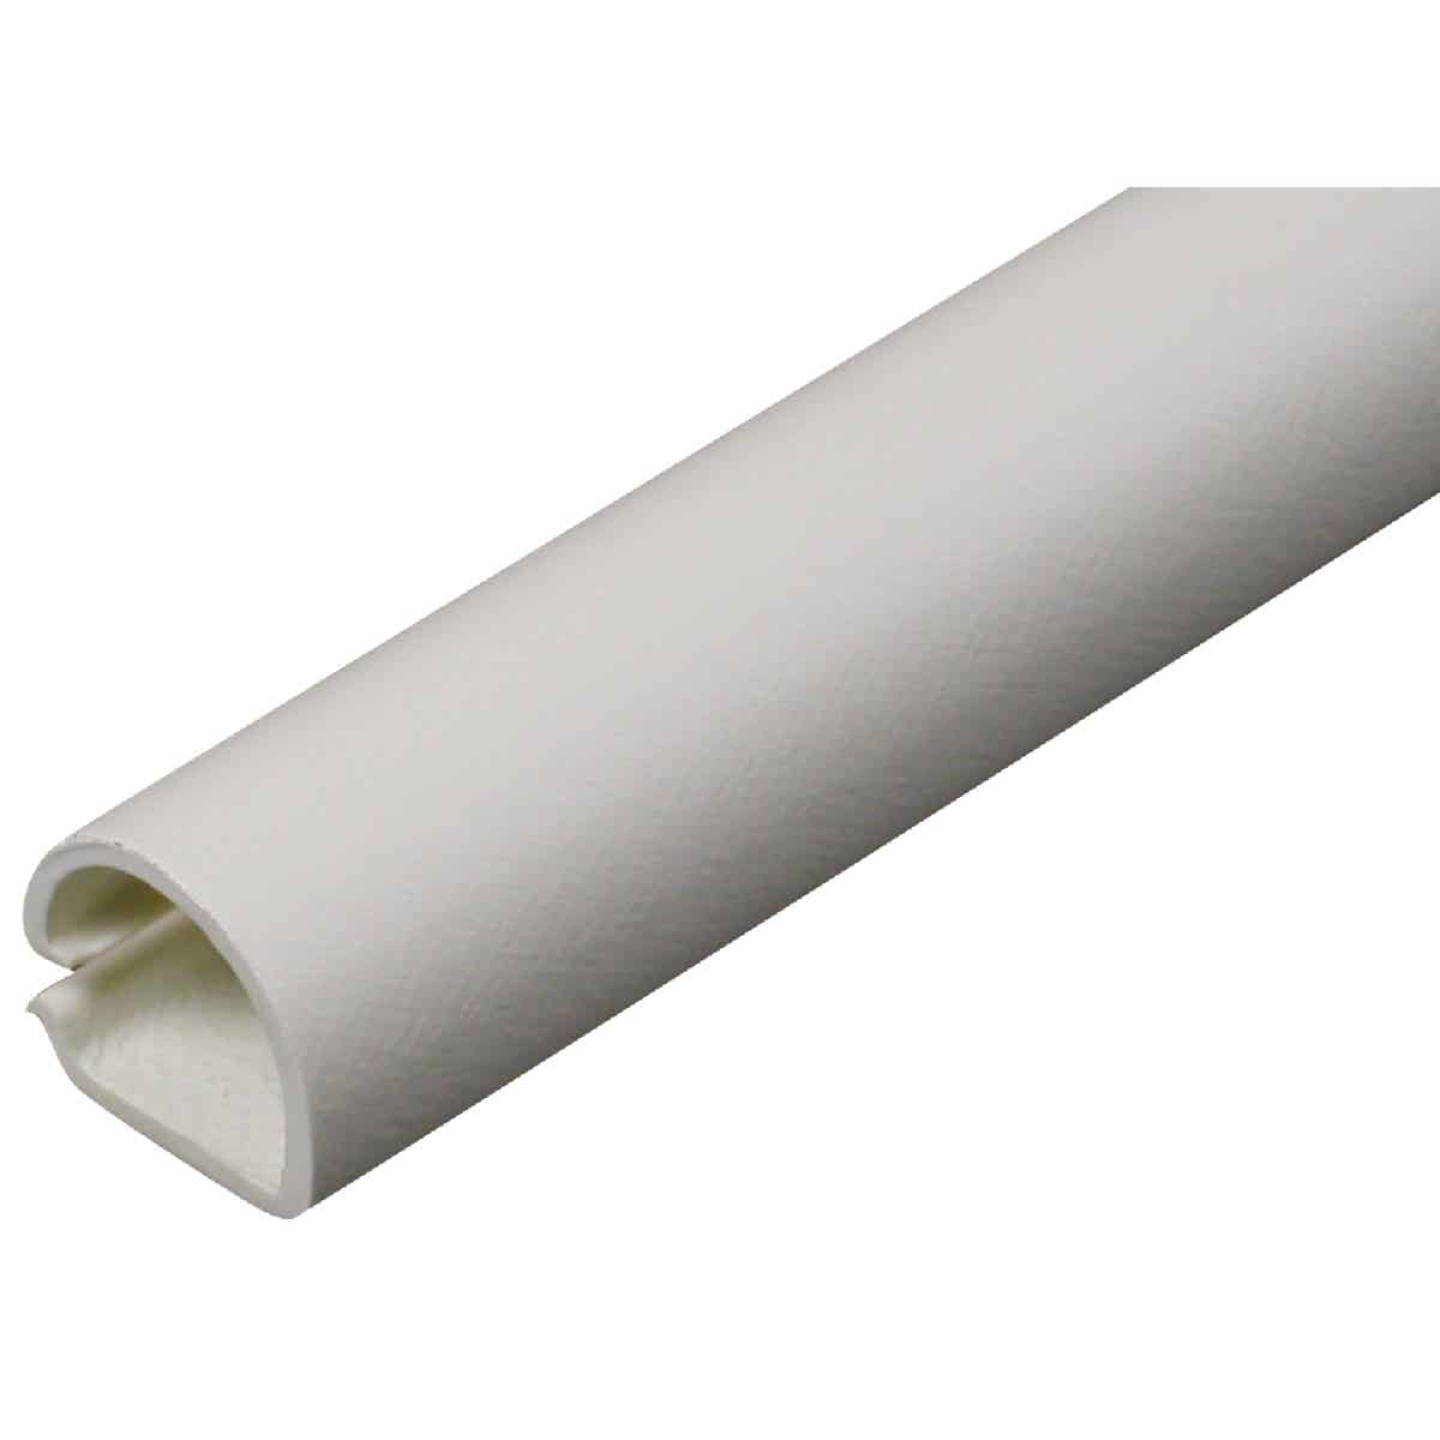 Wiremold CordMate 1/2 In. x 5 Ft. Ivory Channel Image 1